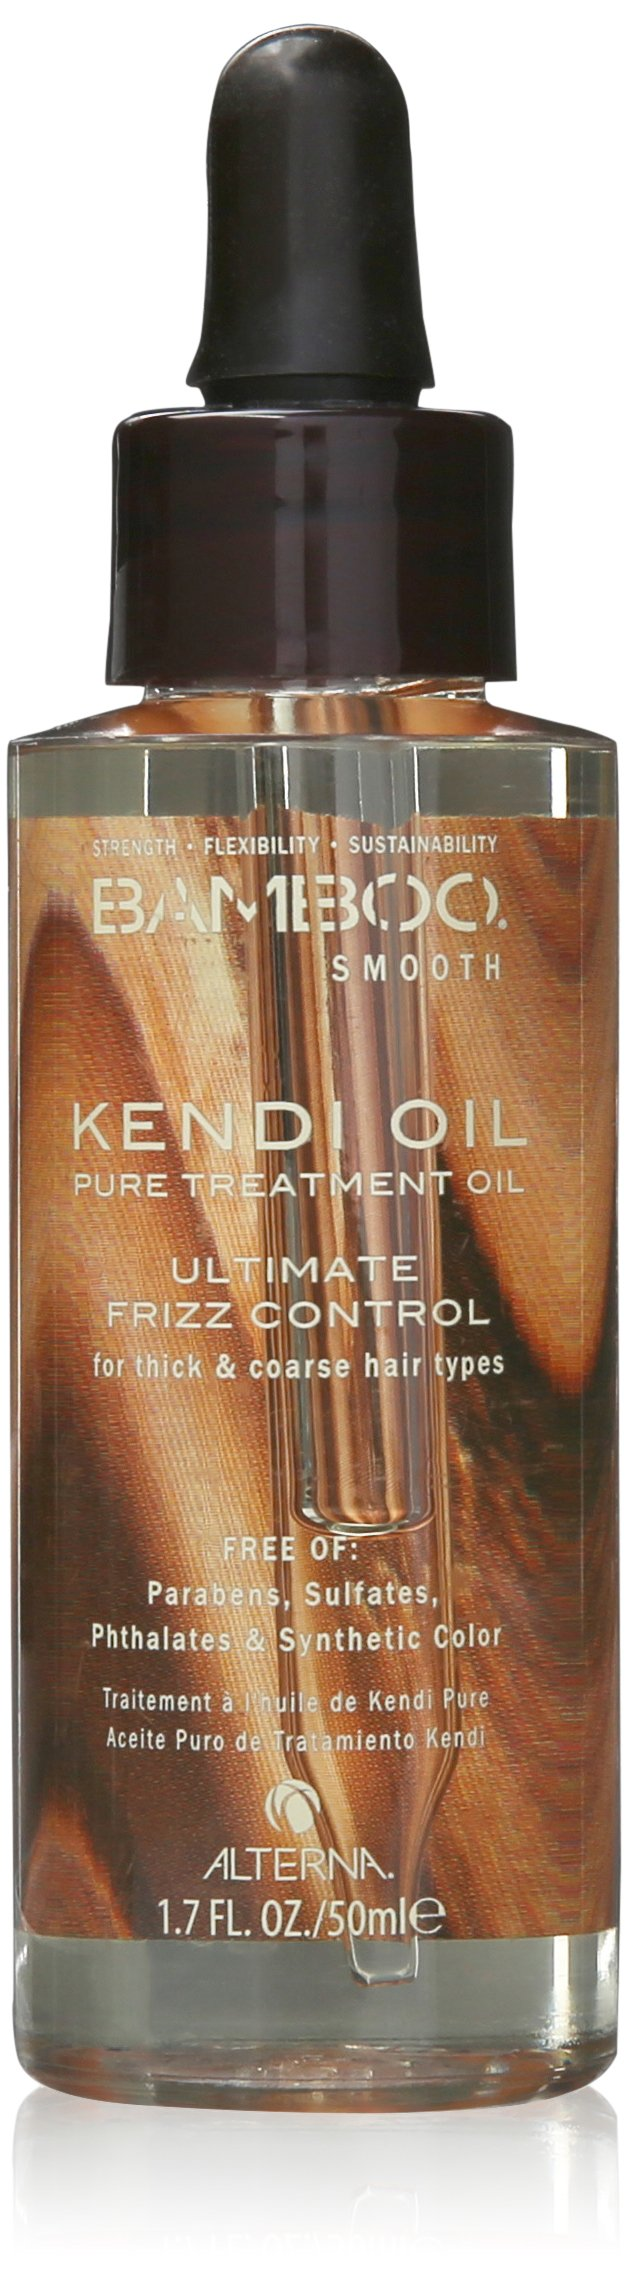 ALTERNA BAMBOO Smooth Pure Kendi Oil Pure Treatment Oil, 1.7 fl oz